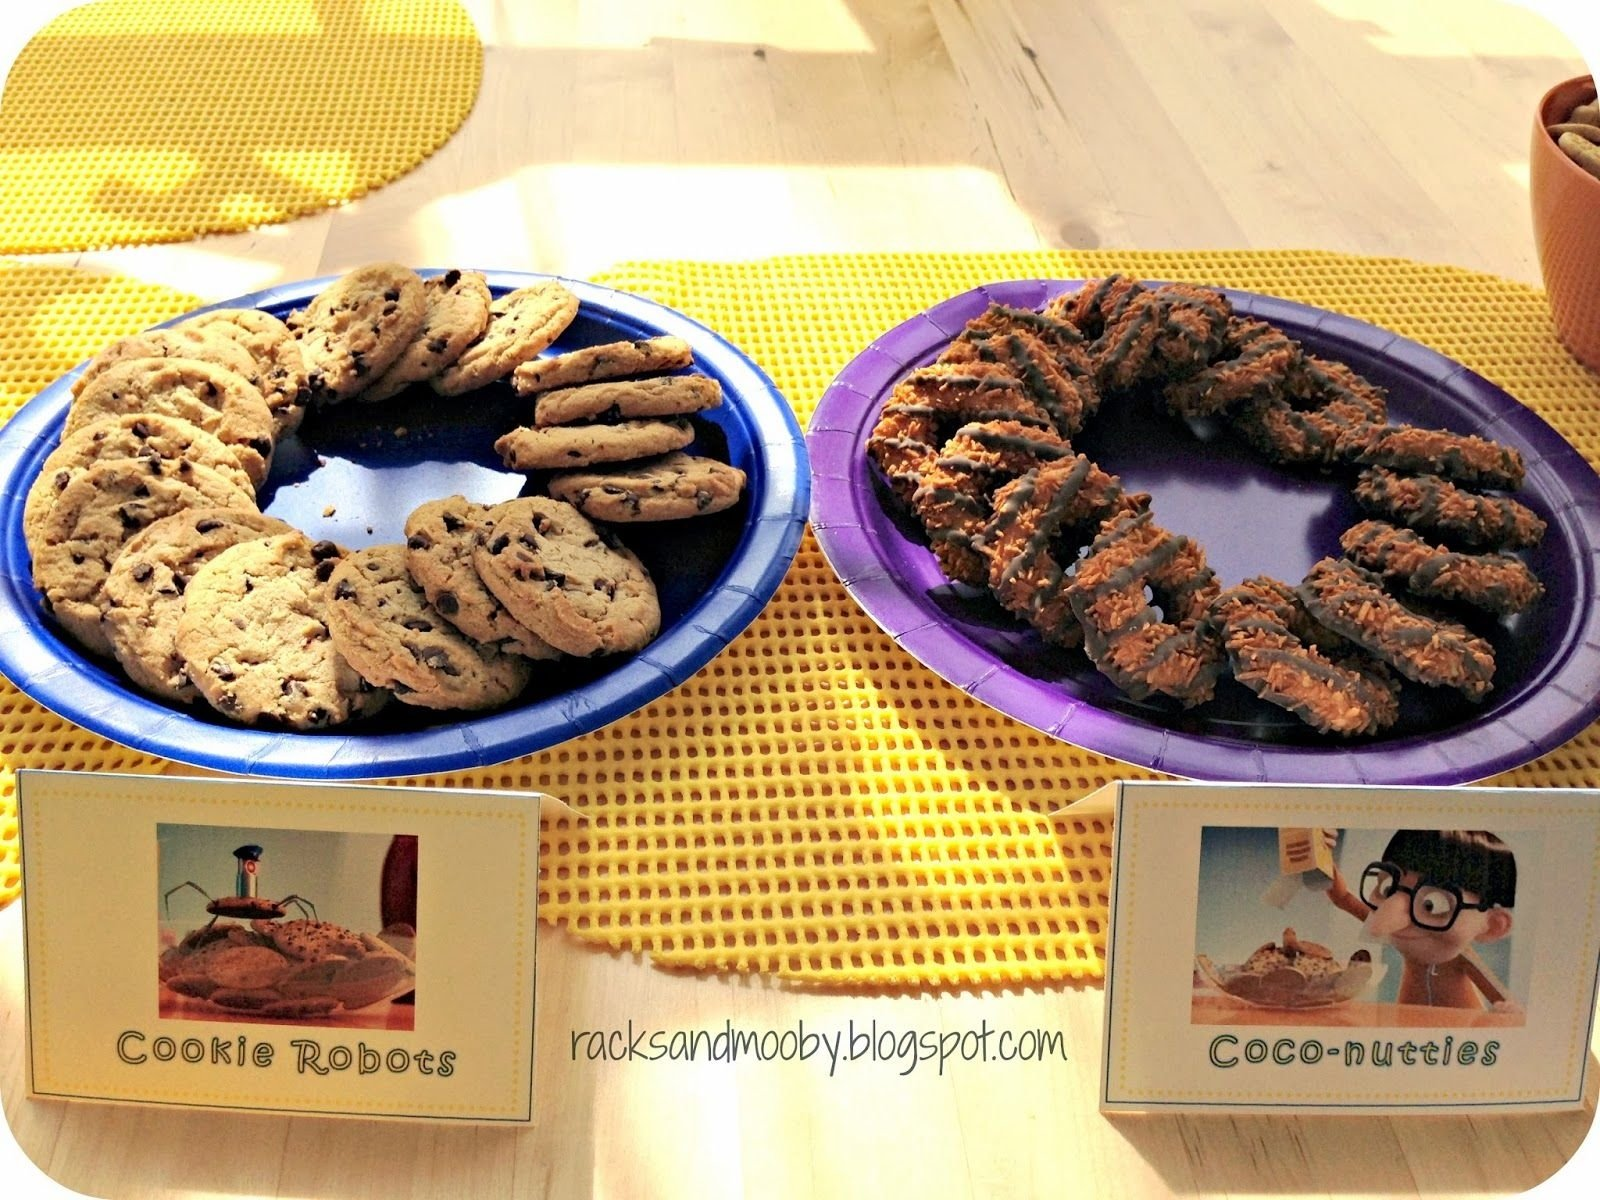 10 Stylish Despicable Me Party Food Ideas despicable me party labels despicable me party cookie robots and